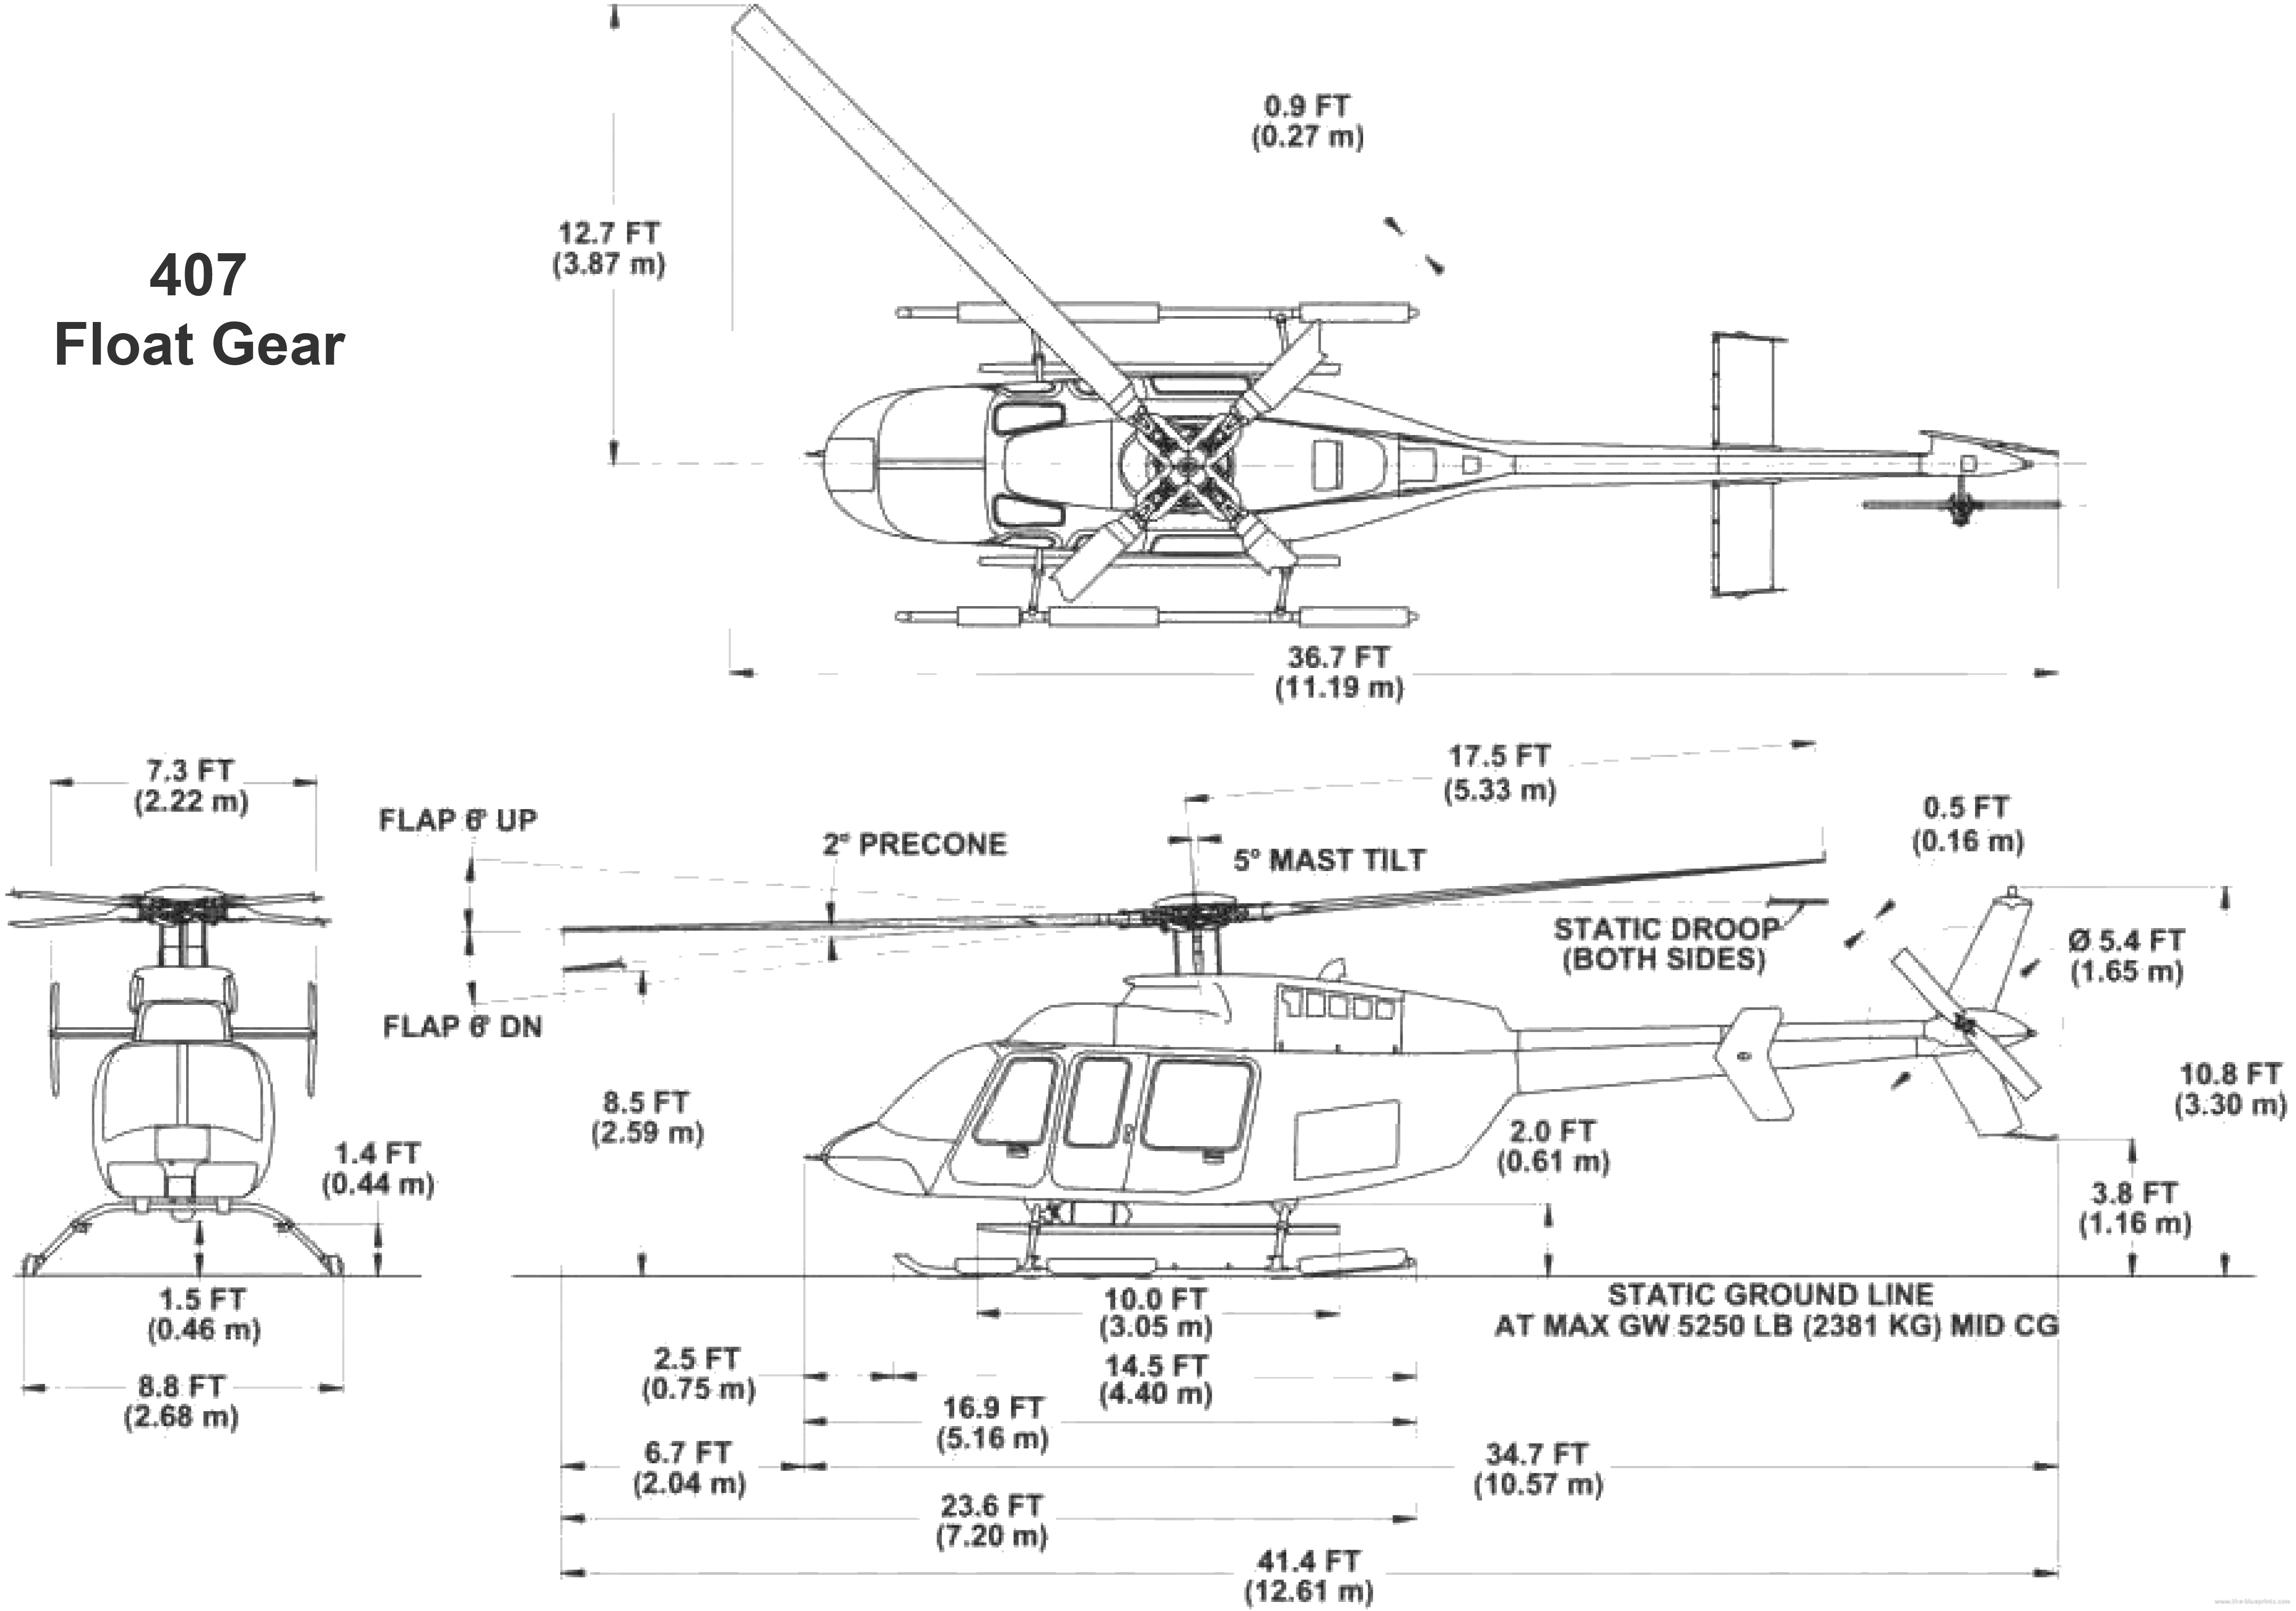 Bell 407 Helicopter Diagrams - Basic Guide Wiring Diagram • Bell Wiring Diagram on bell 206 fuel tank, bell 206 remote control, bell 206 manual, bell 206 engine, bell 206 parts diagram, bell 206 electrical system, bell 206 dimensions, bell 206 seats, bell 206 fuel system,